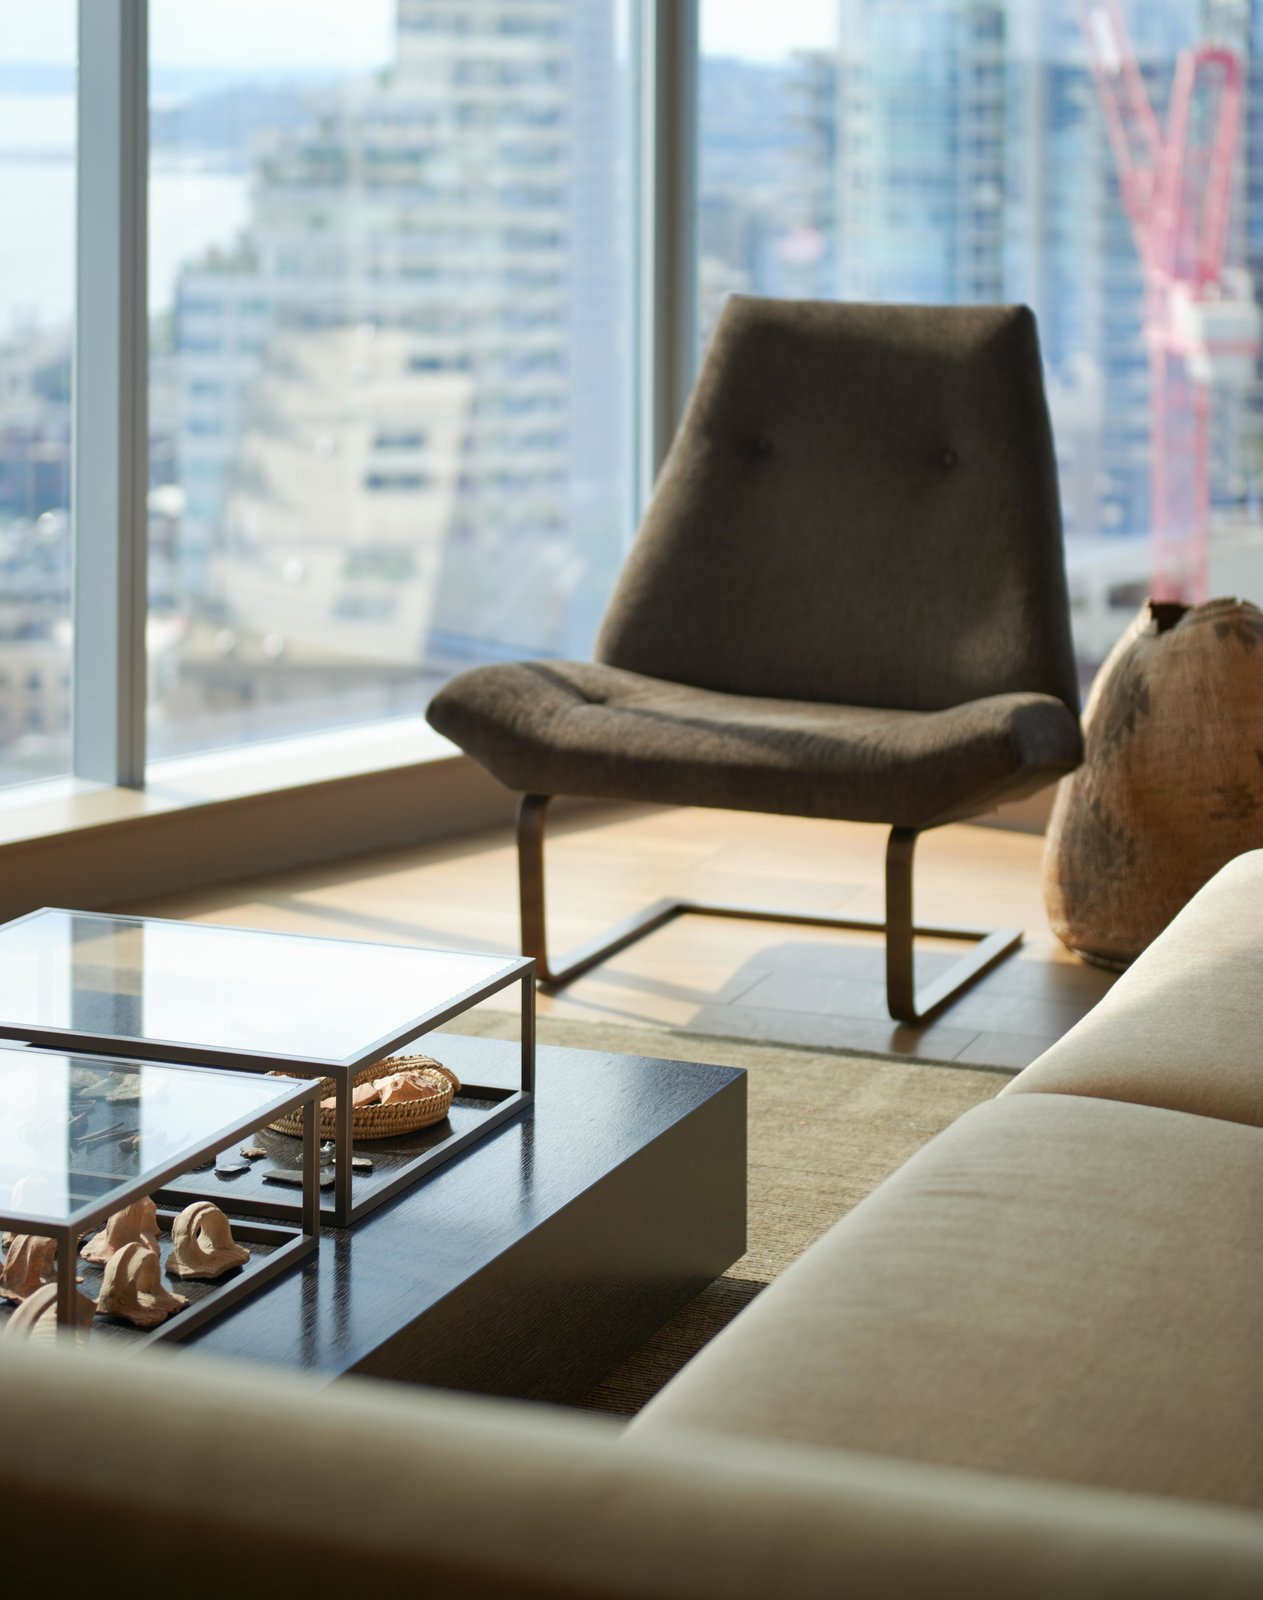 Living Room, Chair, and Sofa Haven of Reflection | Olson Kundig  Haven of Reflection by Olson Kundig